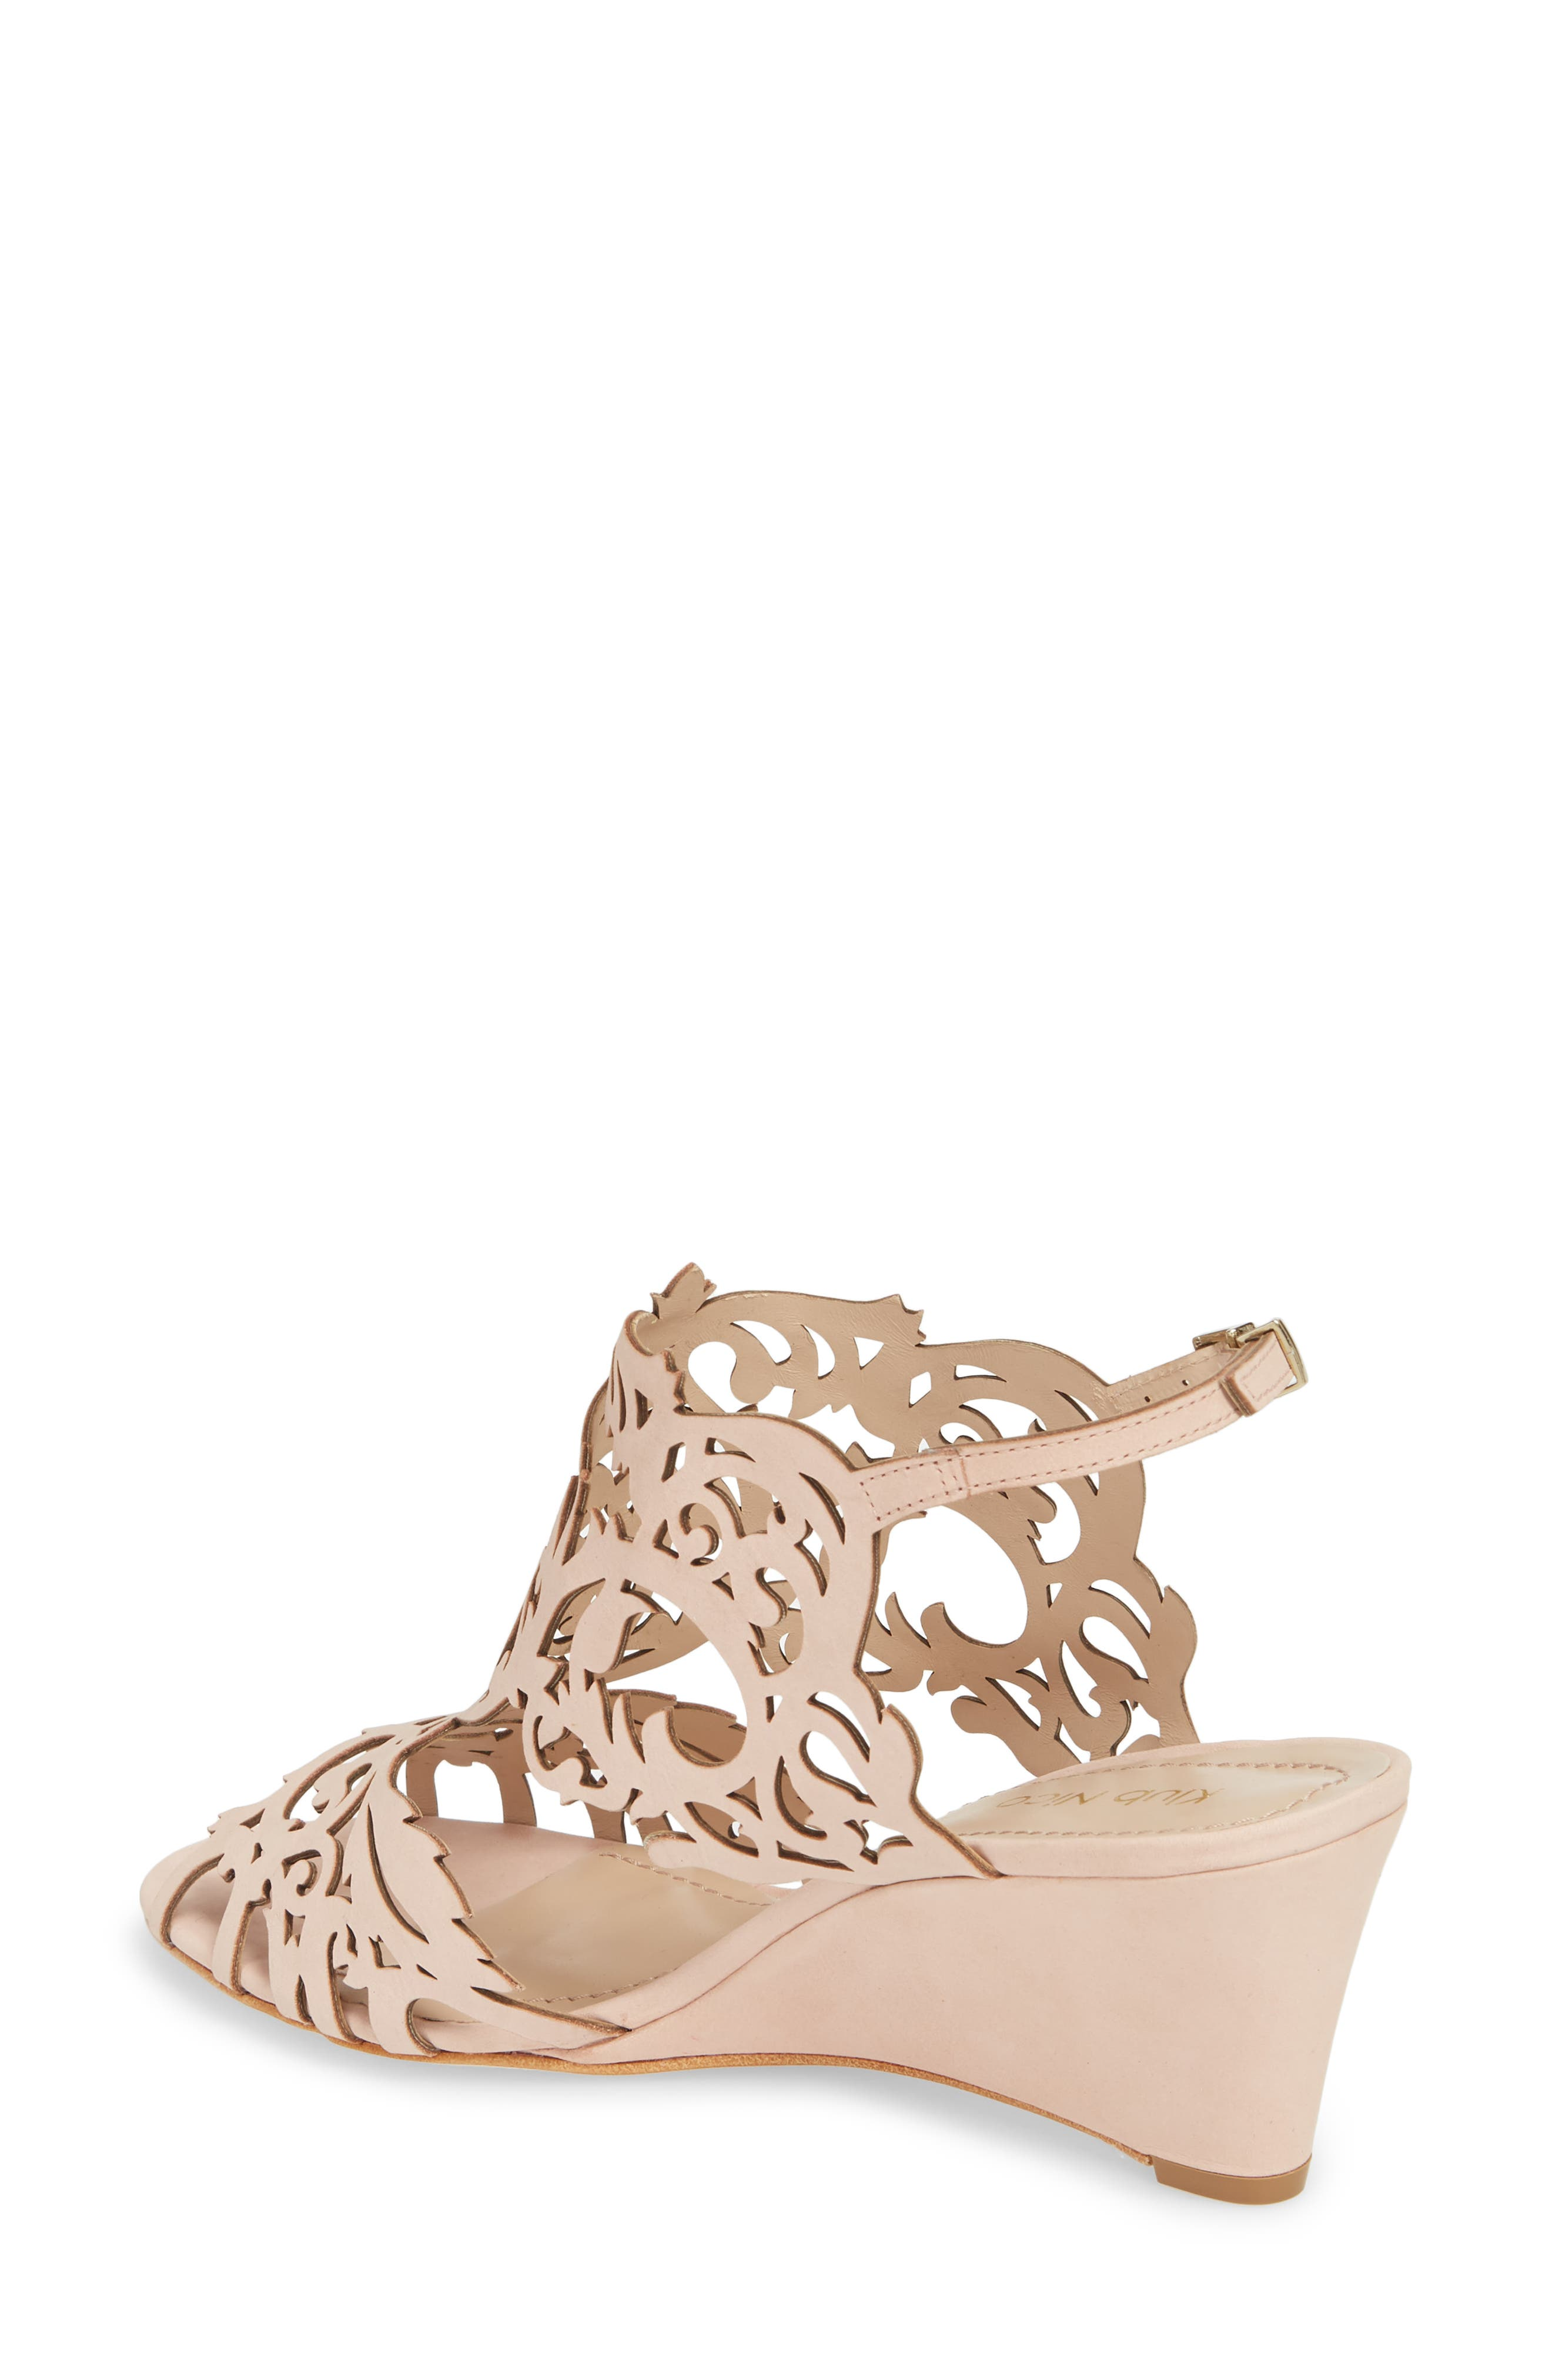 Marcela Laser Cutout Wedge Sandal,                             Alternate thumbnail 2, color,                             Blush Leather